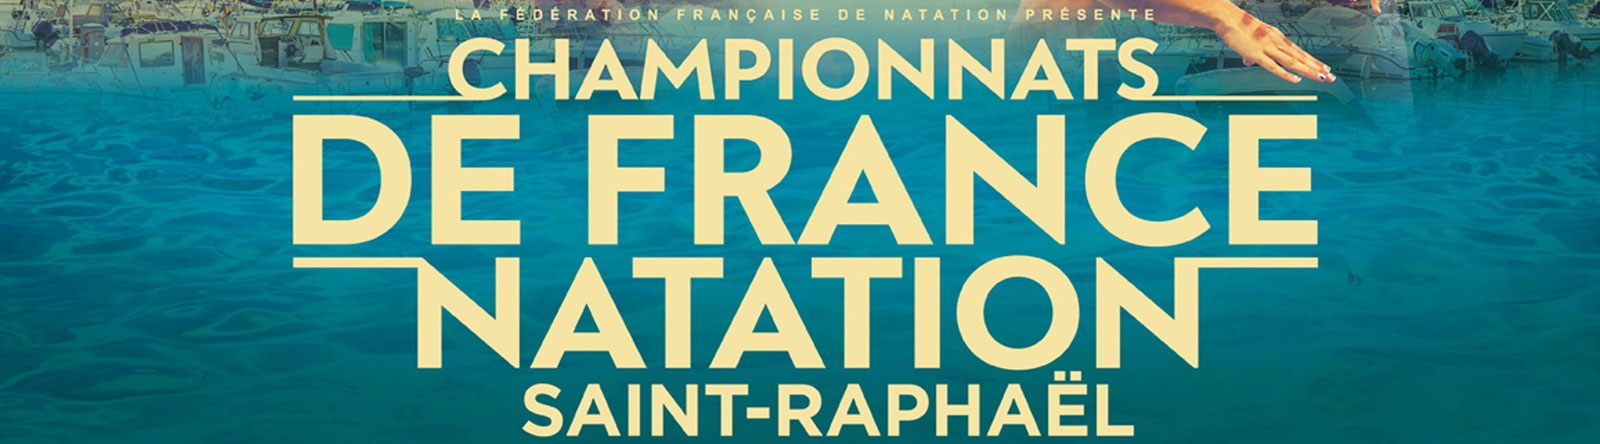 evenement championnat elite natation saint-raphael